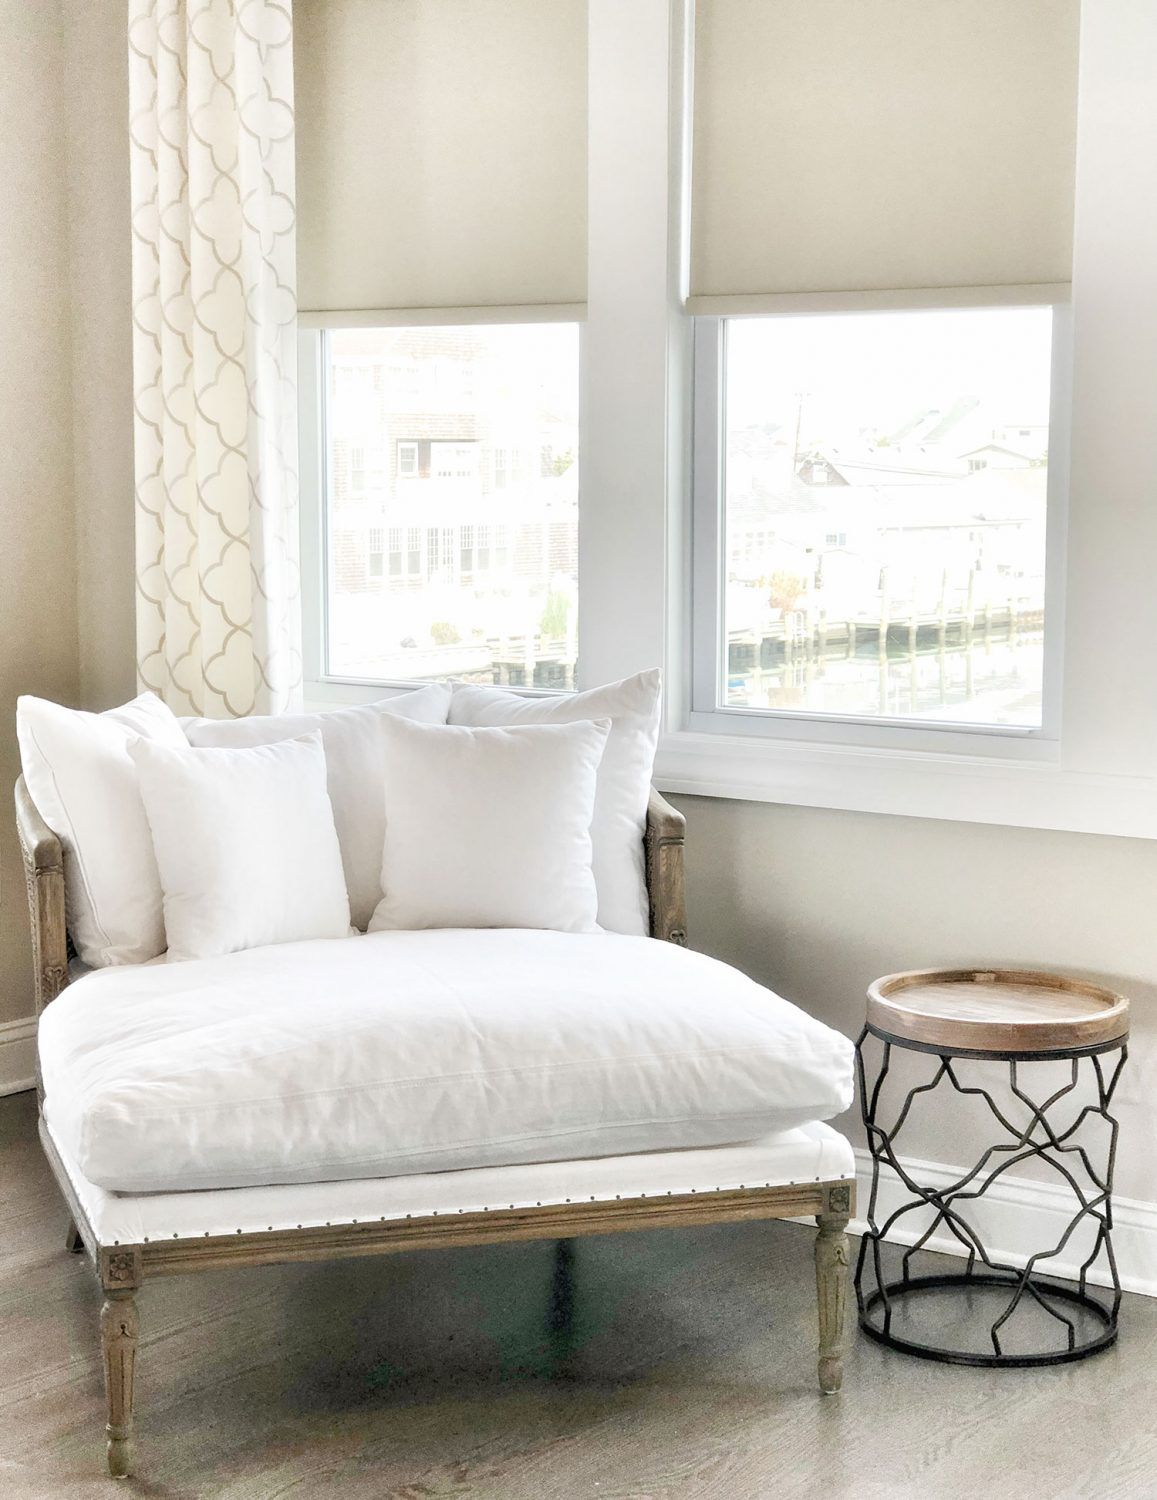 Lavallette New Jersey - Bedroom Interior Design 2